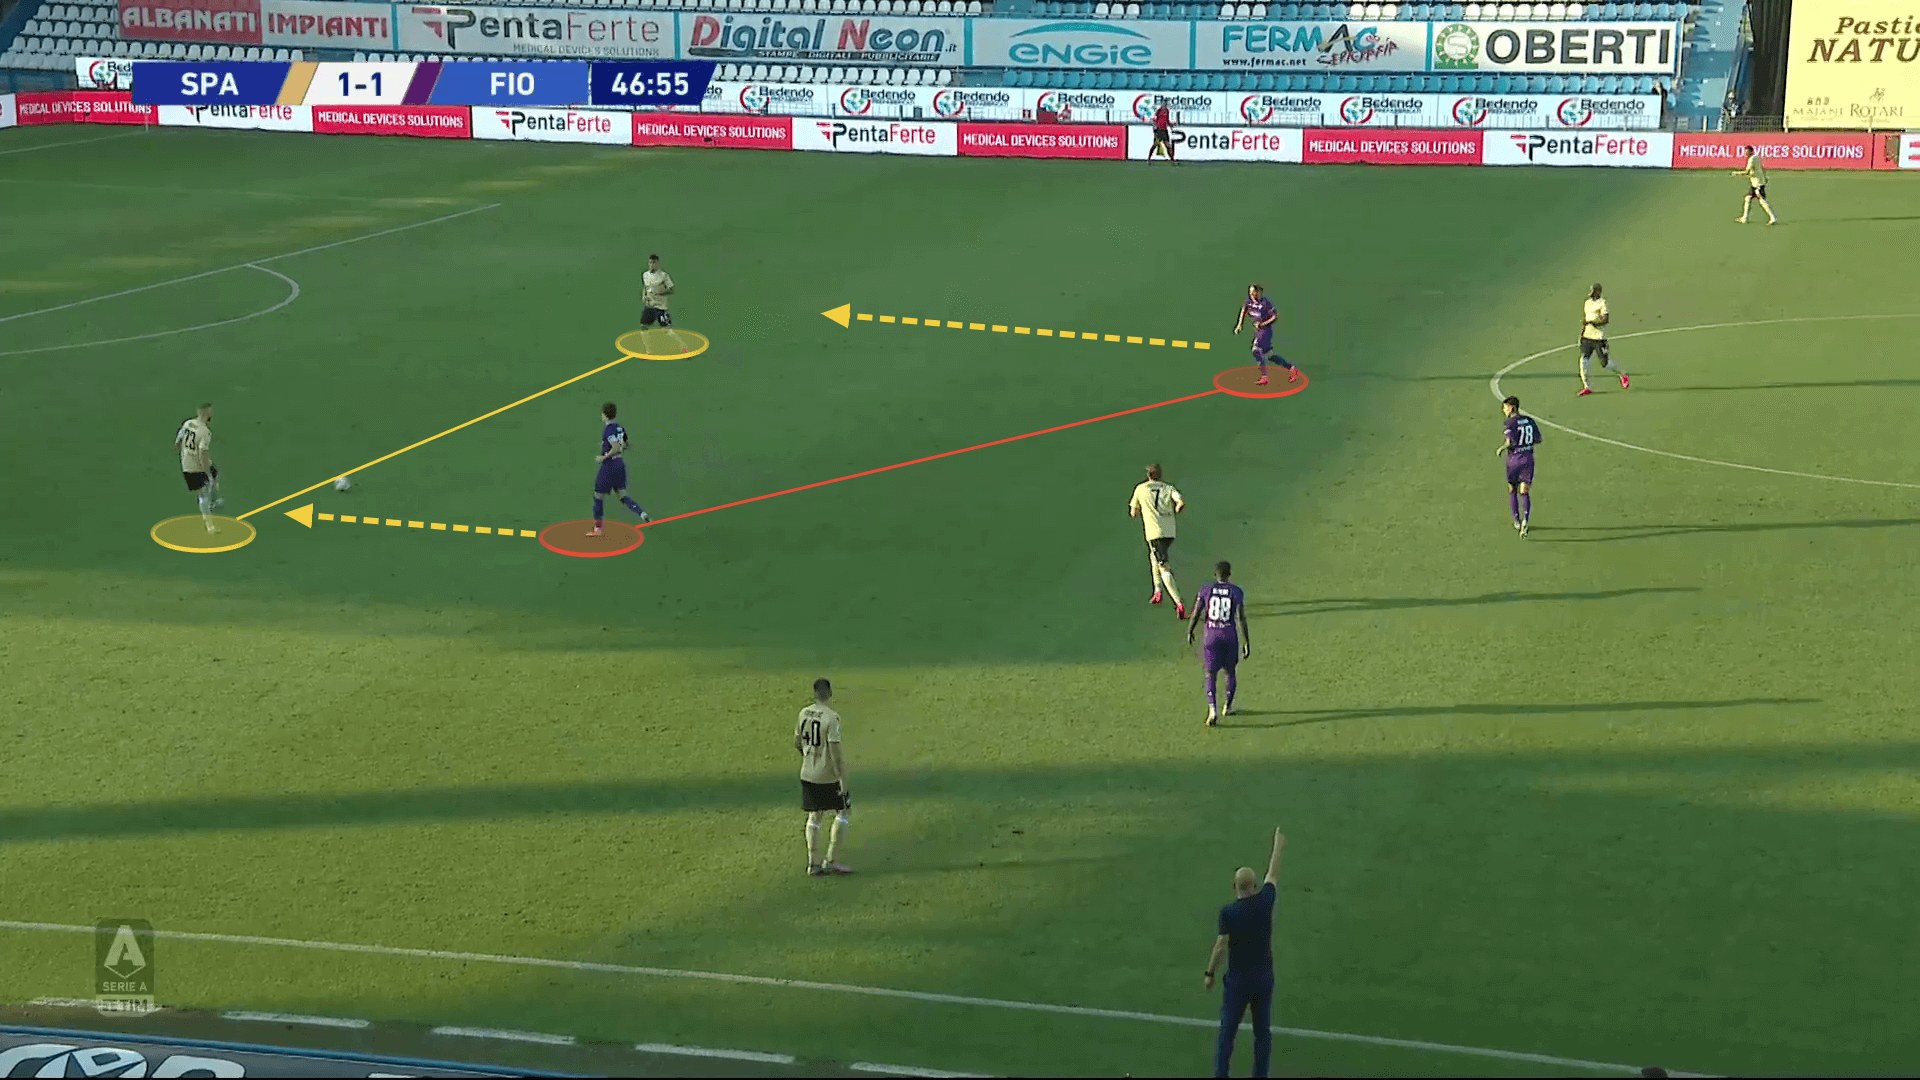 Serie A 2020/21: Inter vs Fiorentina - tactical preview - tactical analysis tactics